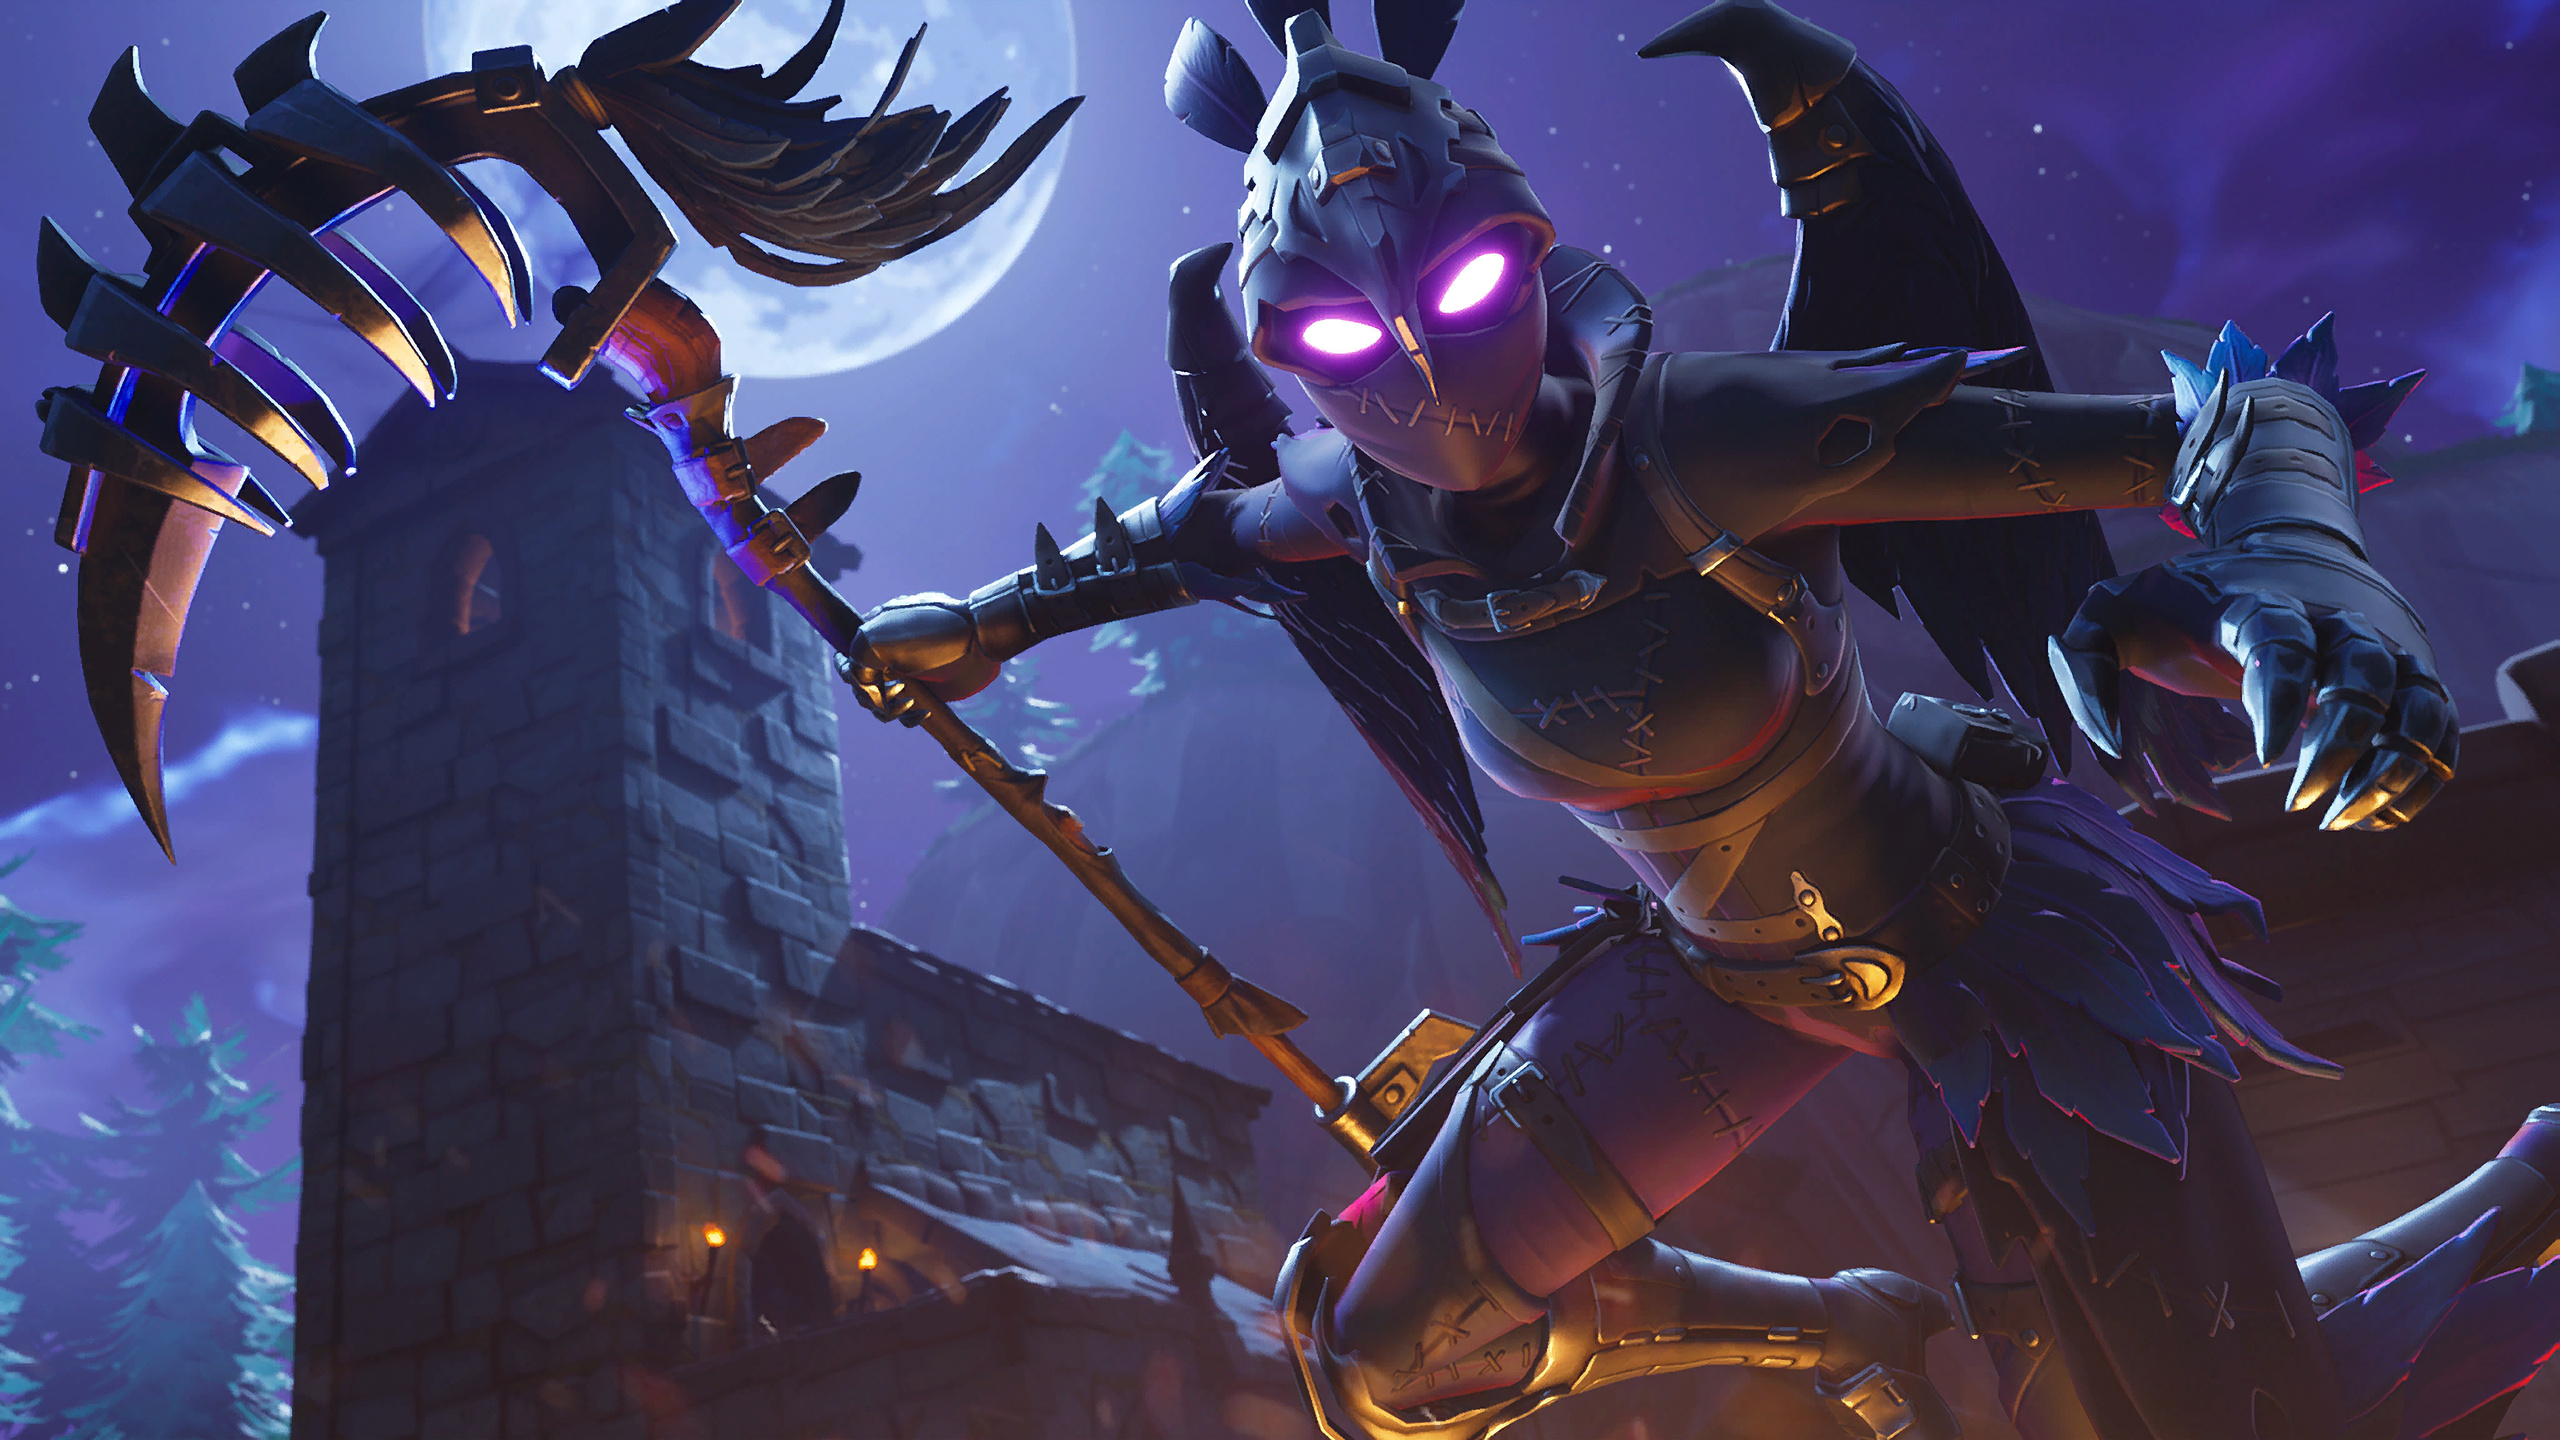 2560x1440 Ravage Fortnite Battle Royale Season 6 4k 1440p